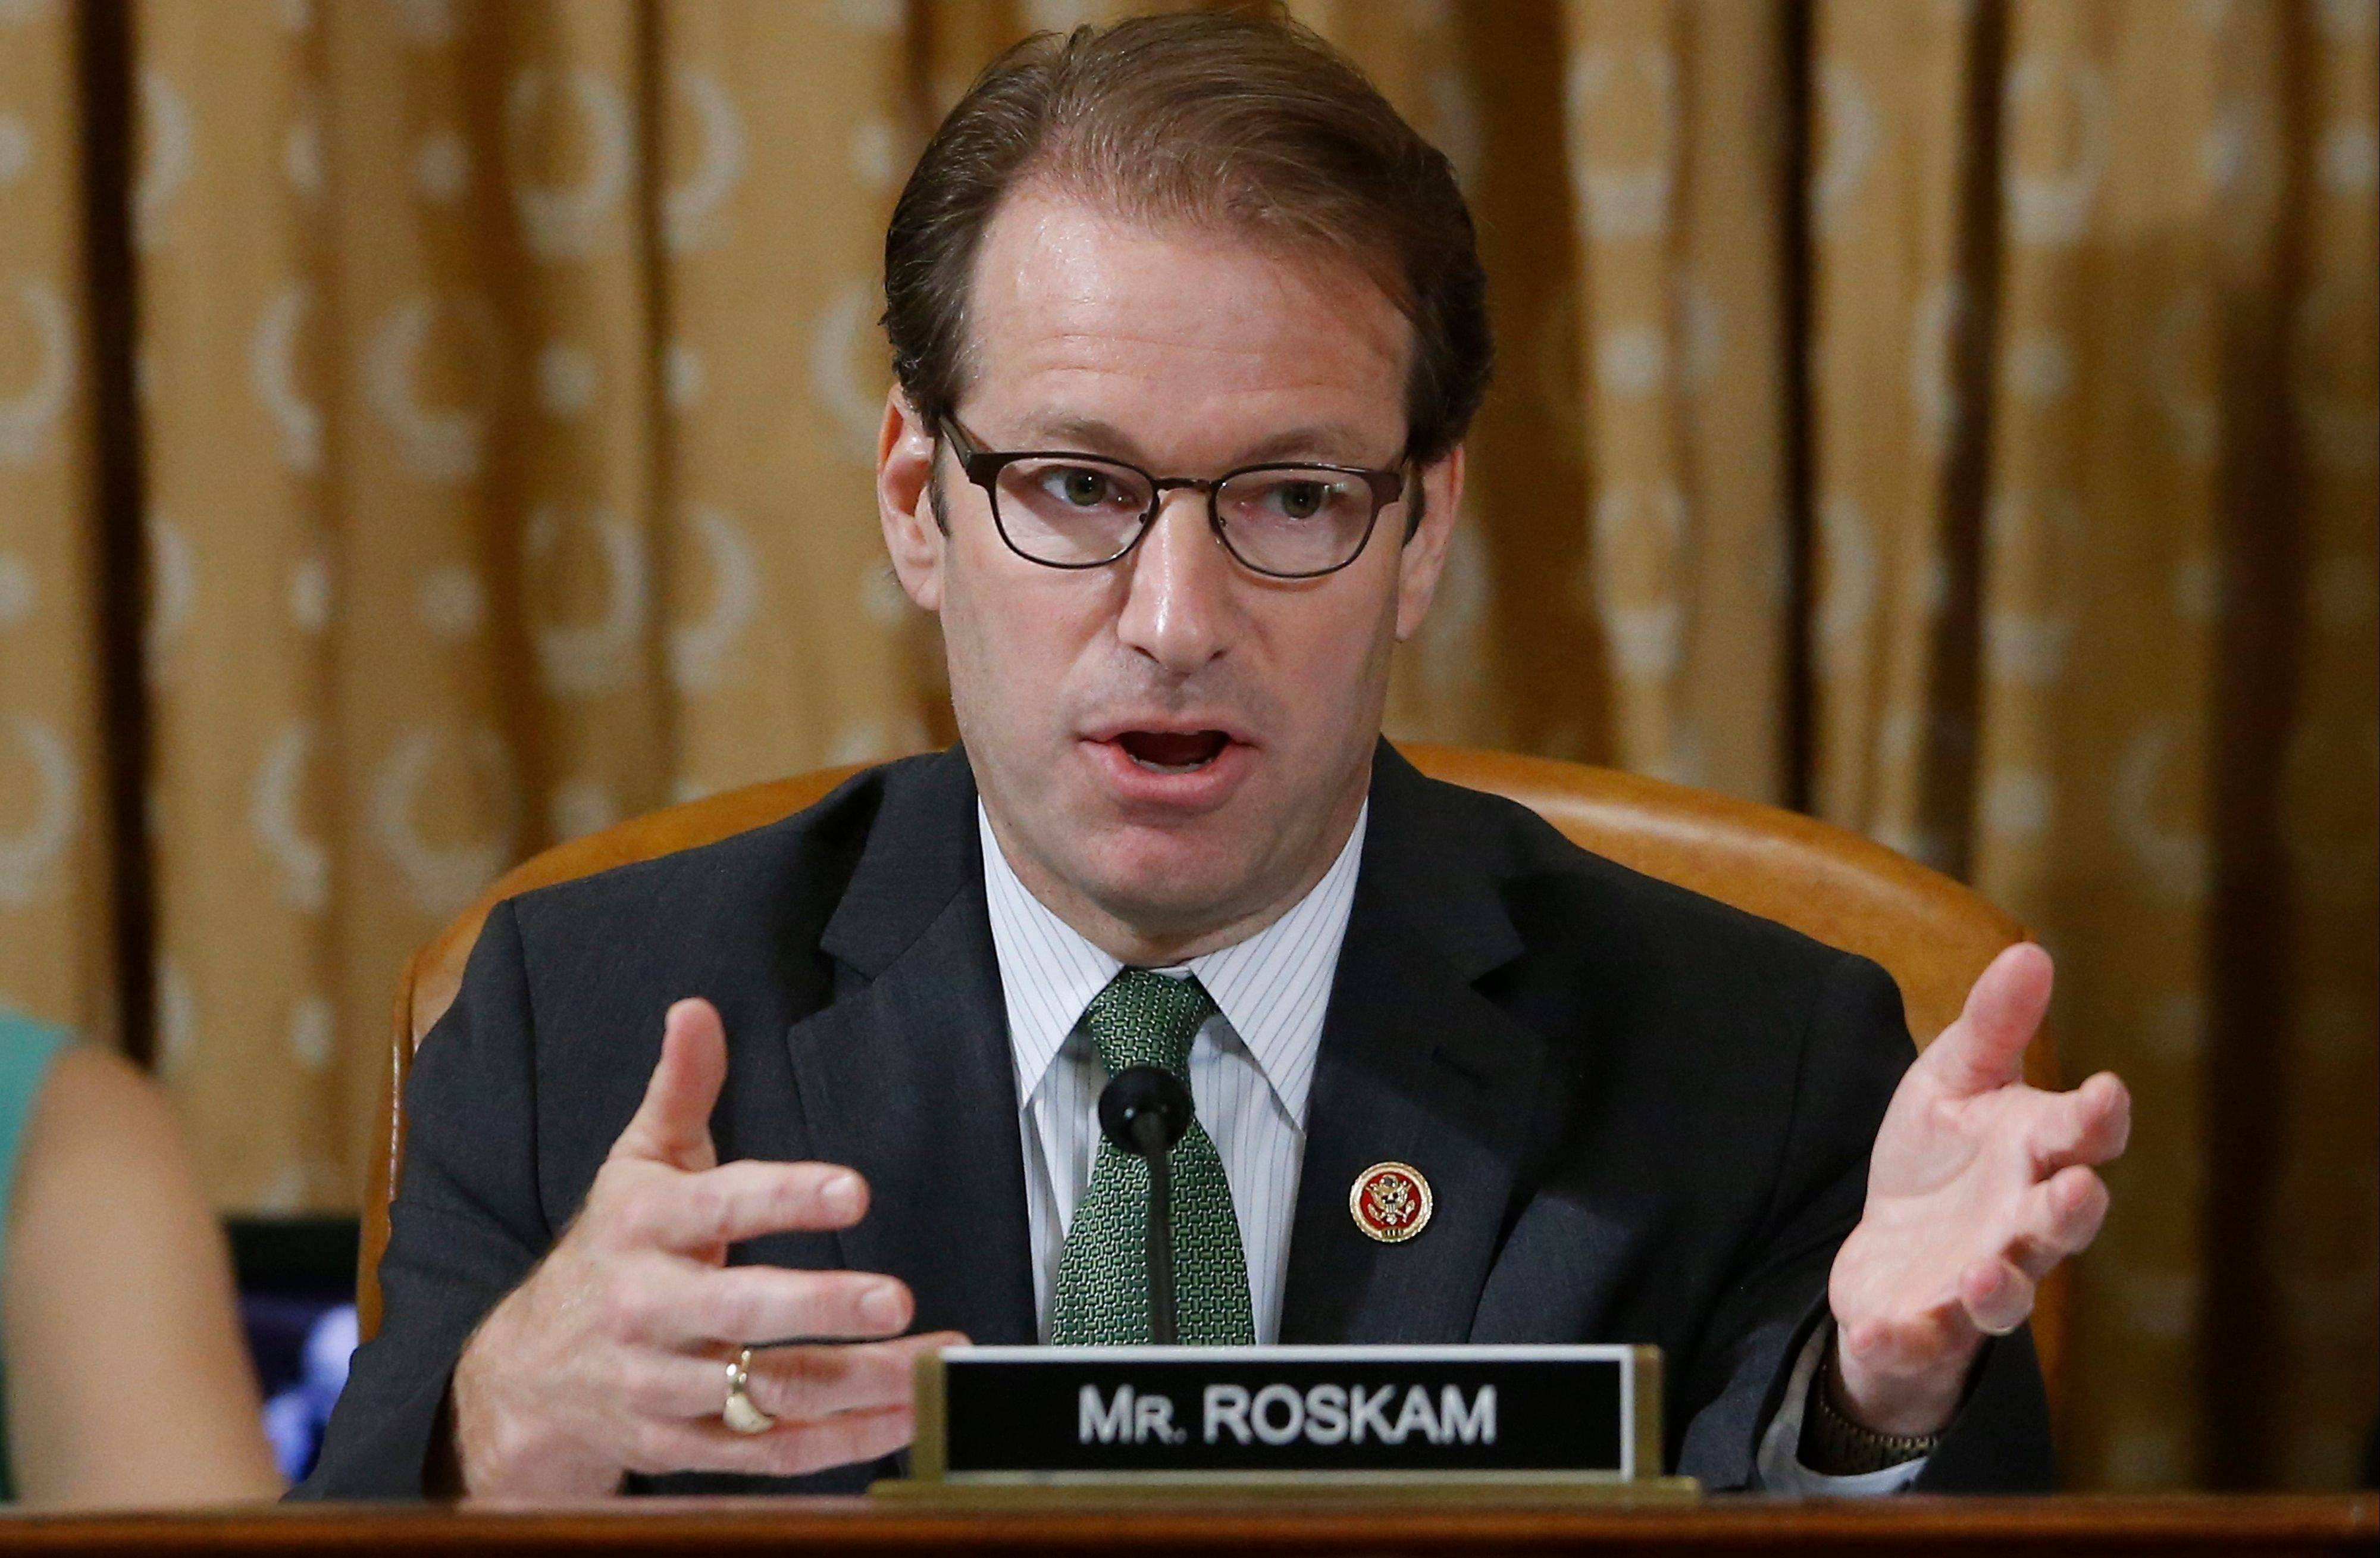 Roskam faces House ethics probe over Taiwan trip